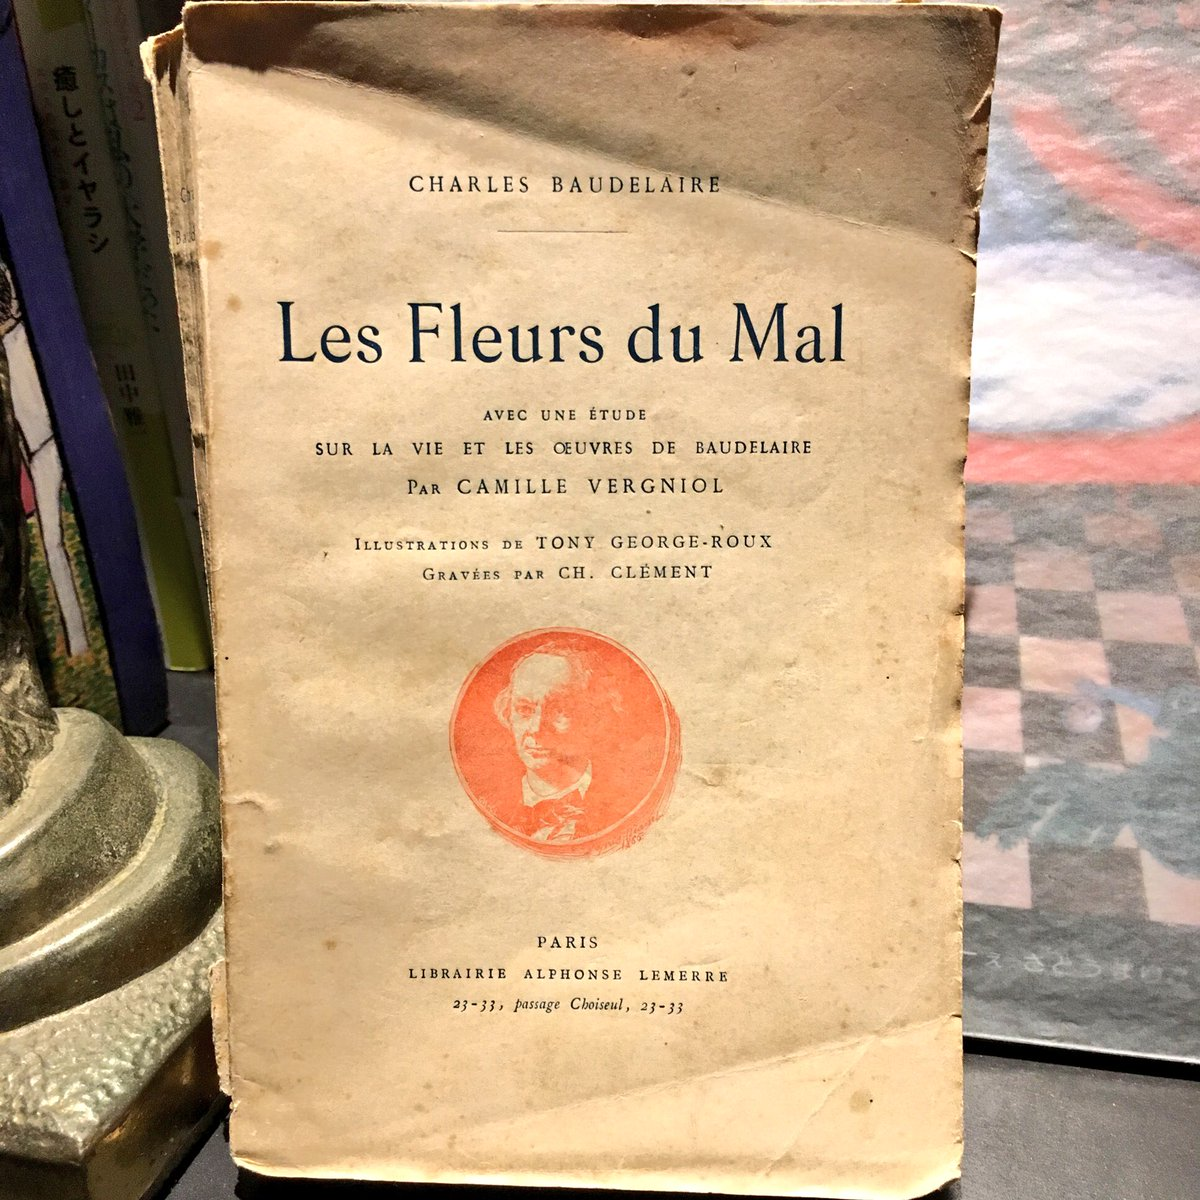 #BAR十誡書籍紹介Charles Baudelaire, Les Fleurs du malフランスの象徴派詩人・ボー